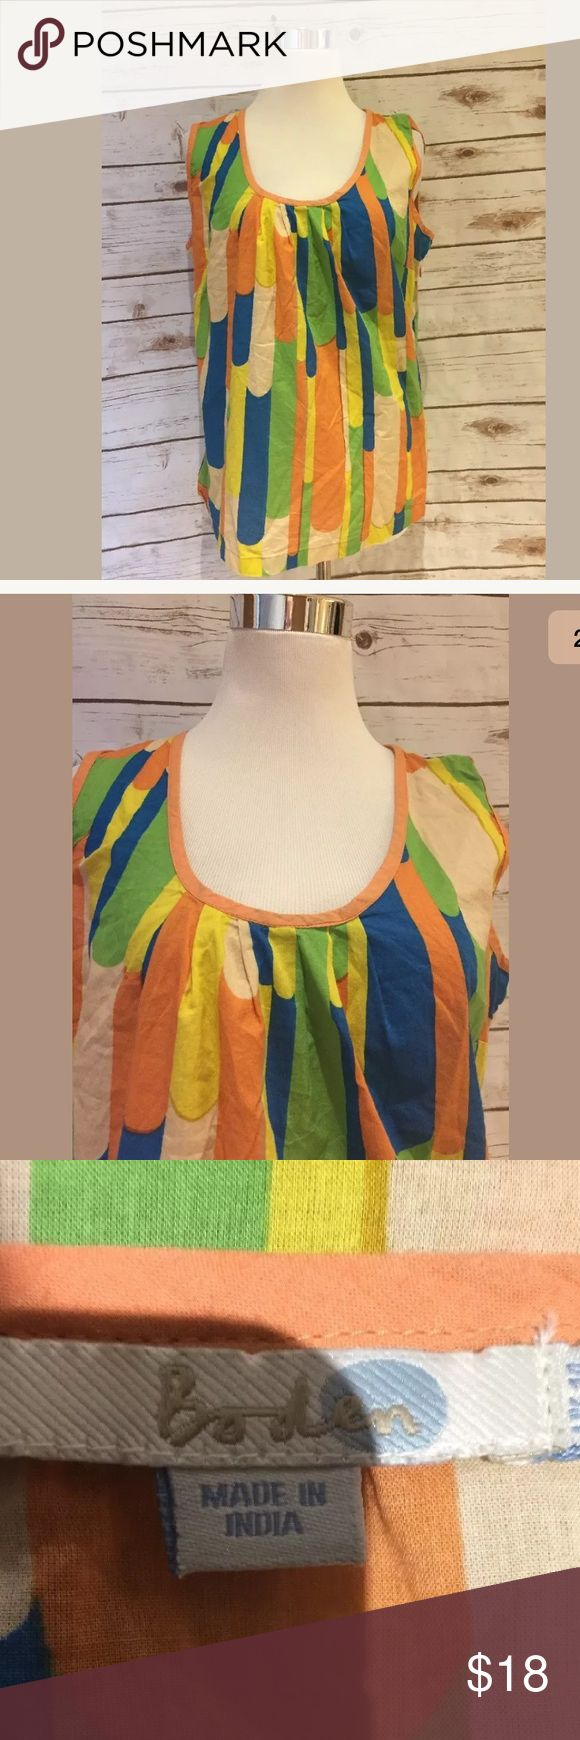 Boden blouse size 10 Thank you for shopping with me and supporting a US based small business Measures 19 inches underarm to underarm and 22 inches long  * Items are shipped in an appropriately sized mailing envelope. Boden Tops Blouses